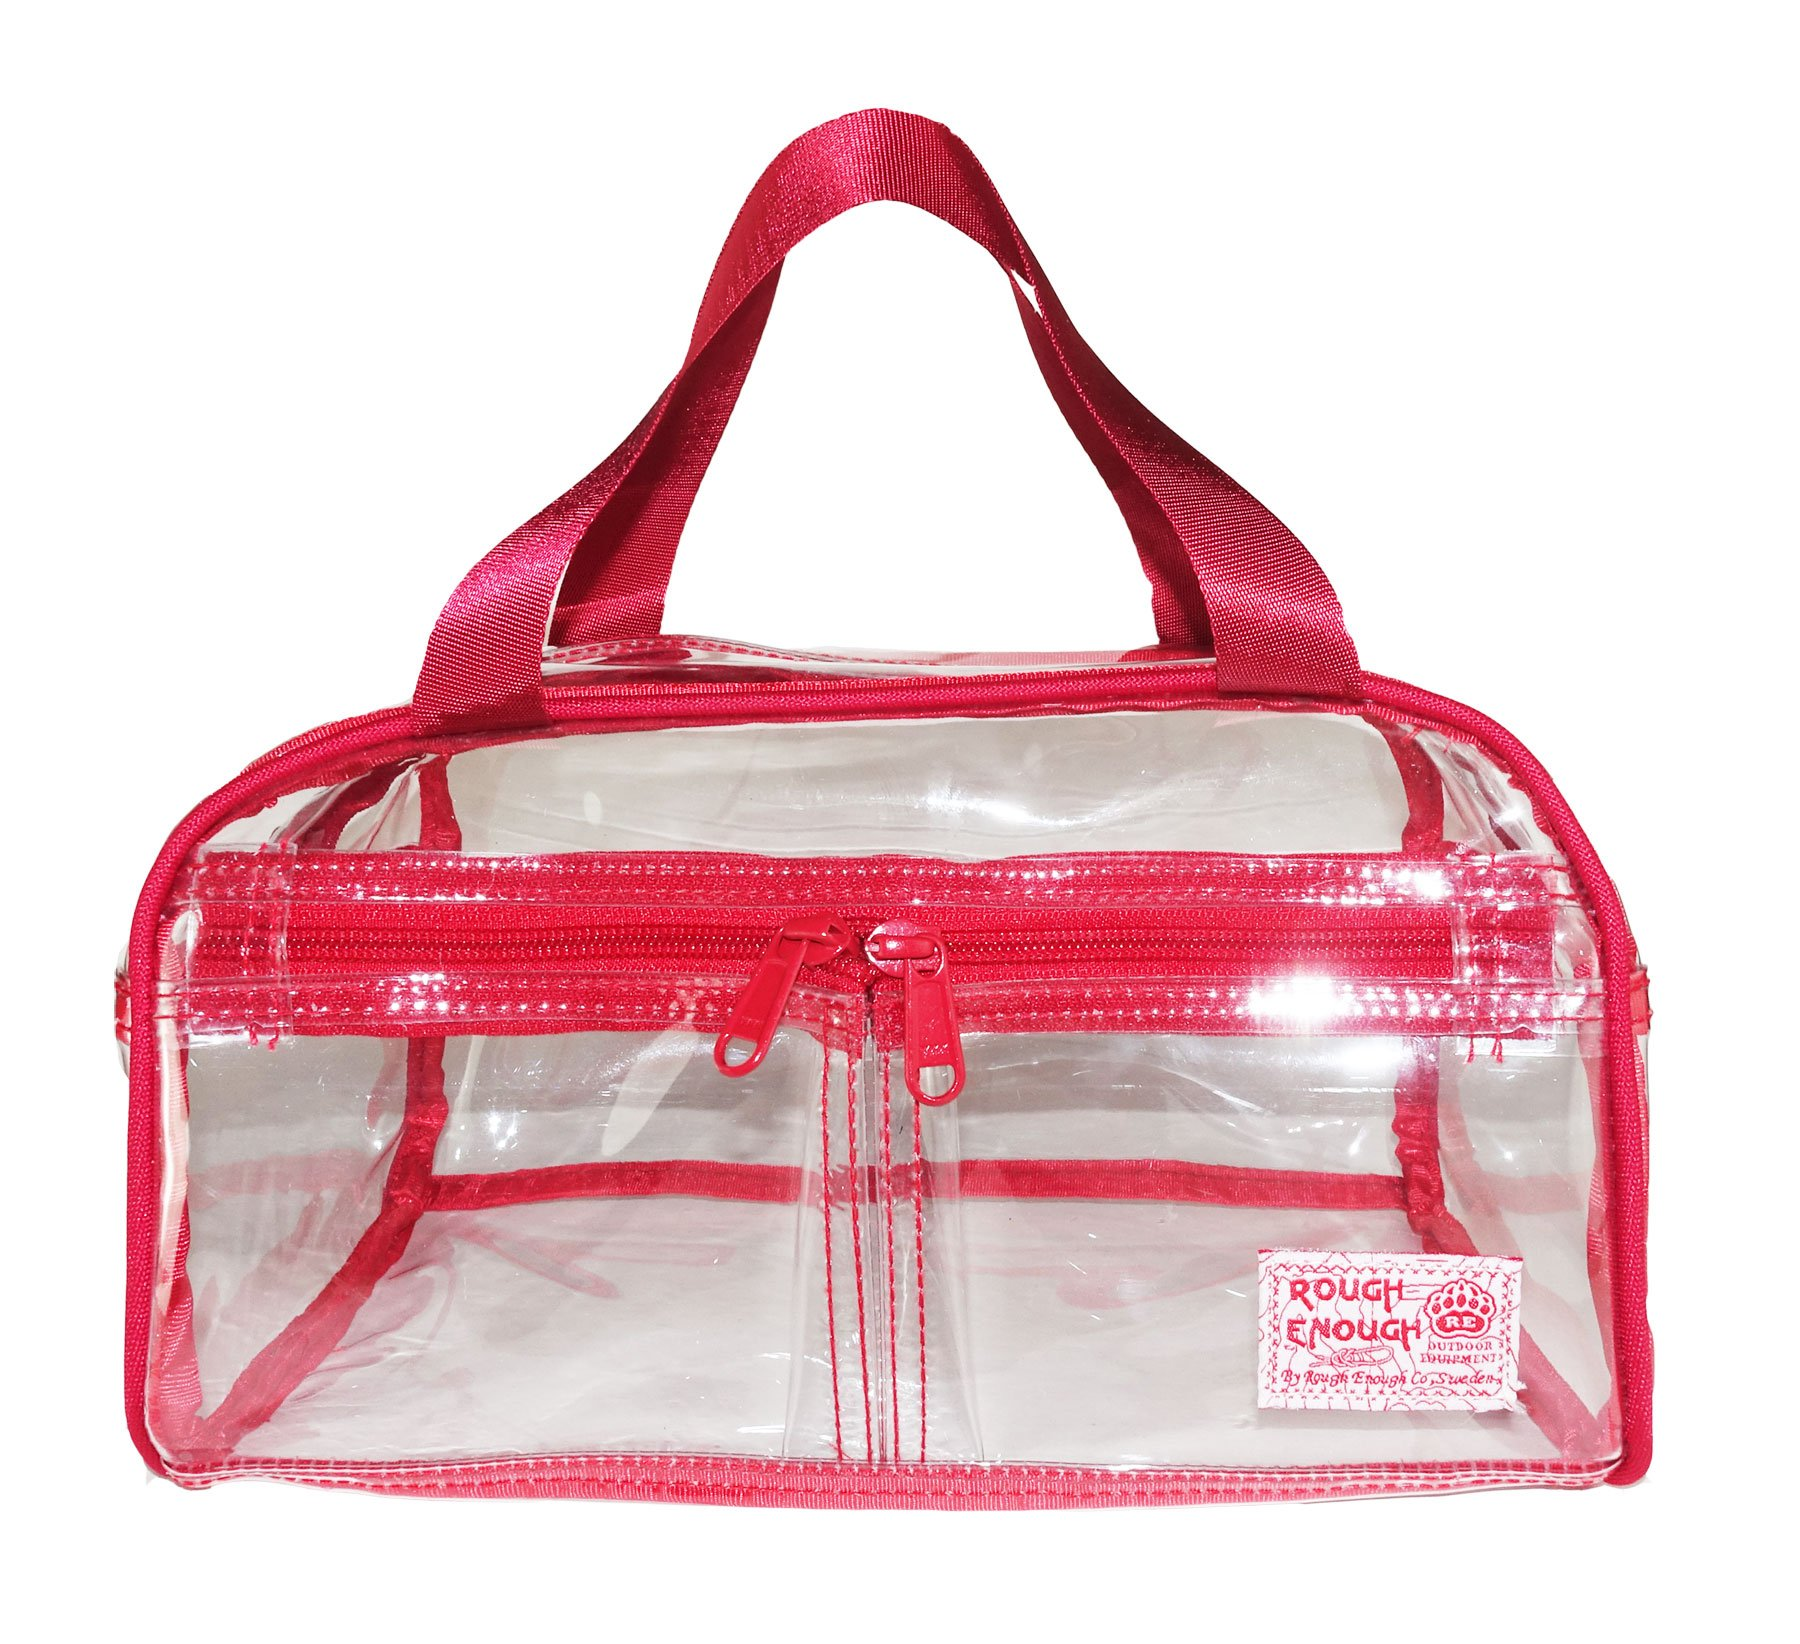 Rough Enough Clear Transparent Fashion Comestic Handbag Toiletry Bag Large Capacity Toiletry Travel Cosmetic Makeup Bag Kit Box Set Clear Bag With Zipper For Outdoor Trip Organize Accessories